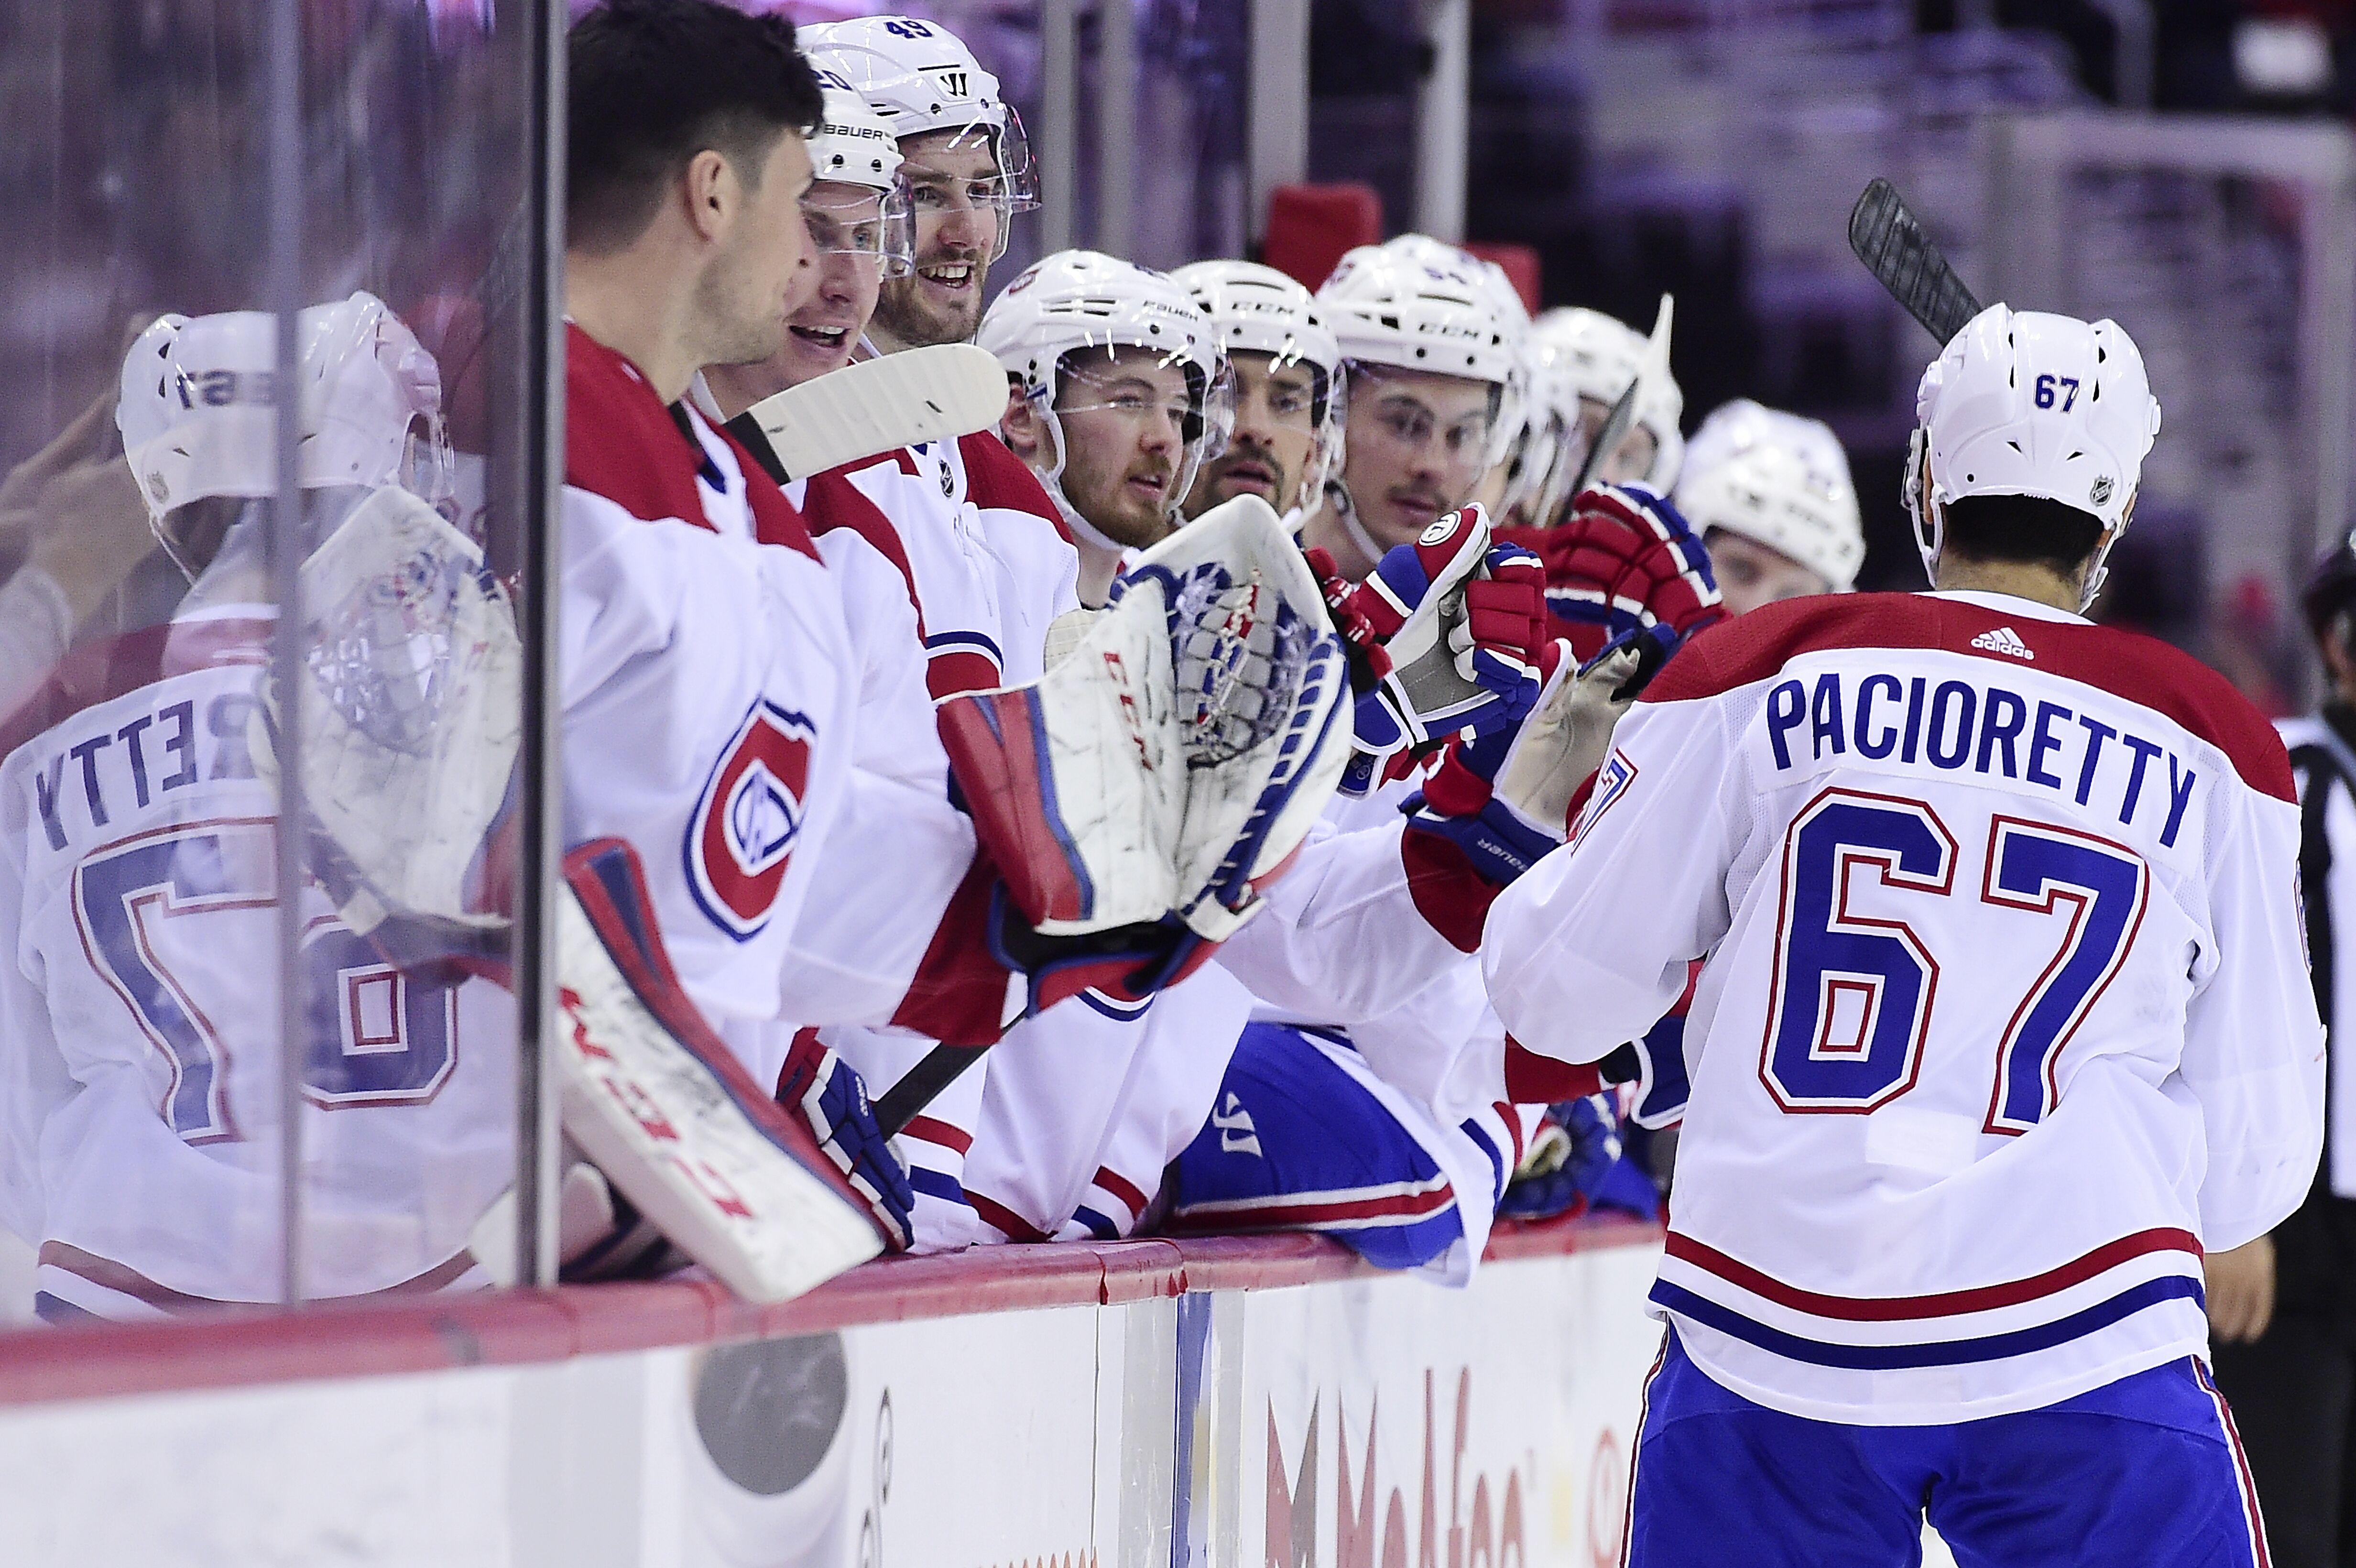 There Have Been A Lot Of Rumours Around The Montreal Canadiens But The Drafted Defencemen Who Need Contracts And Max Paciorettys Scoring Are Prime Topics